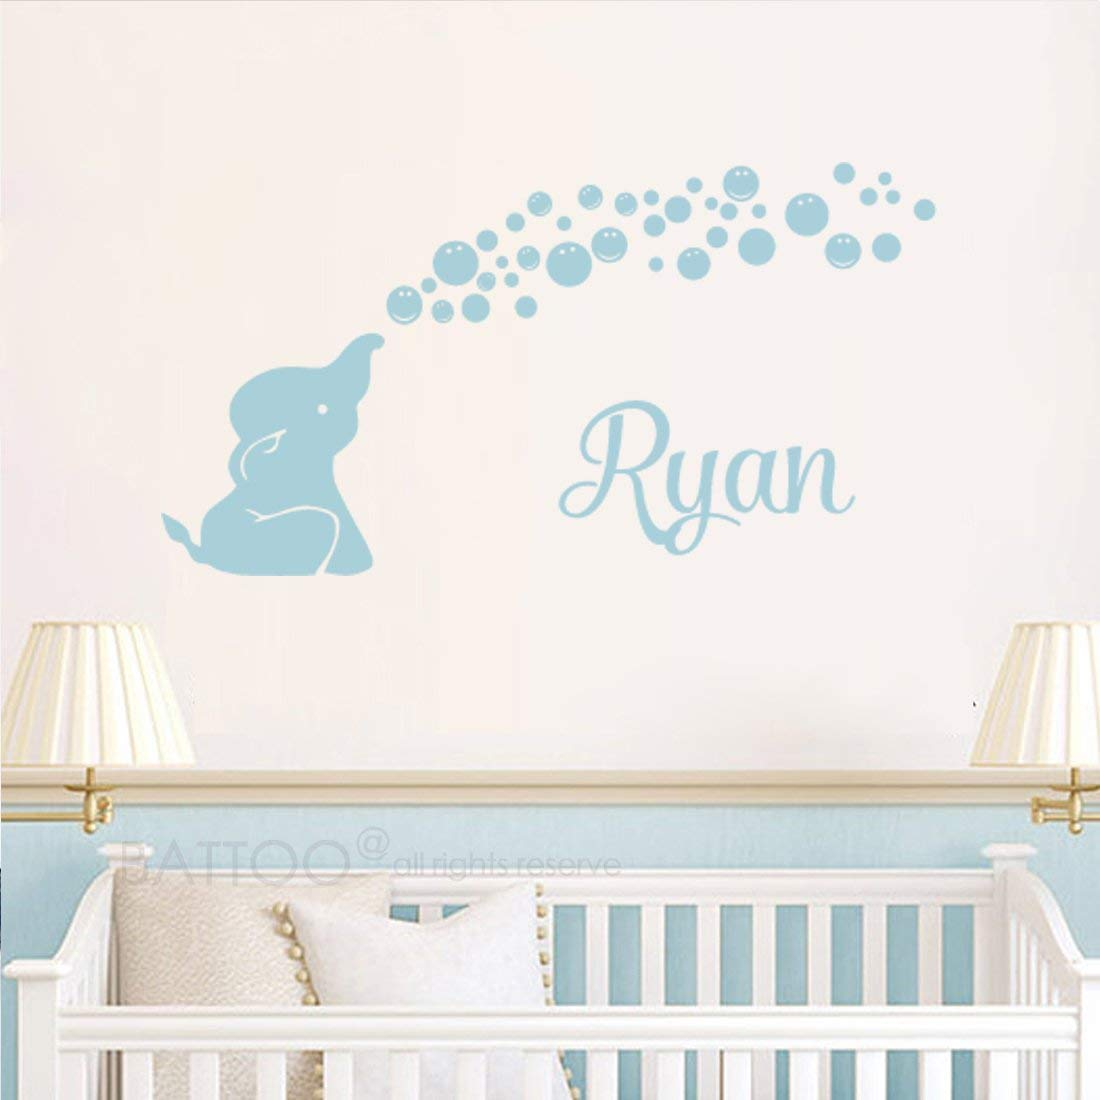 BATTOO Elephant Name Wall Decal, Personalized Name Wall Decal, Boys Girls Wall Decal, Nursery Decor, Vinyl Wall Decal, Elephant Decal